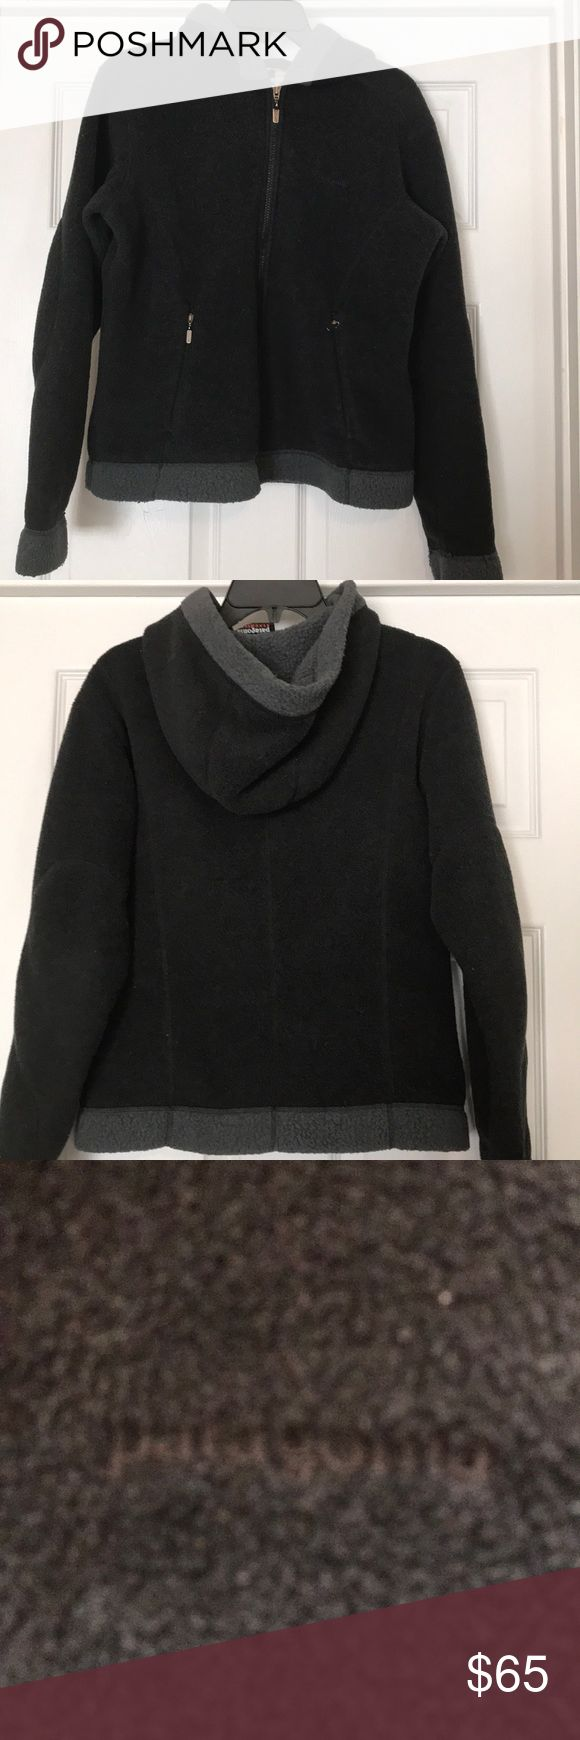 Patagonia Synchilla Jacket Size M black with gray trim. Great condition! Patagonia Jackets & Coats